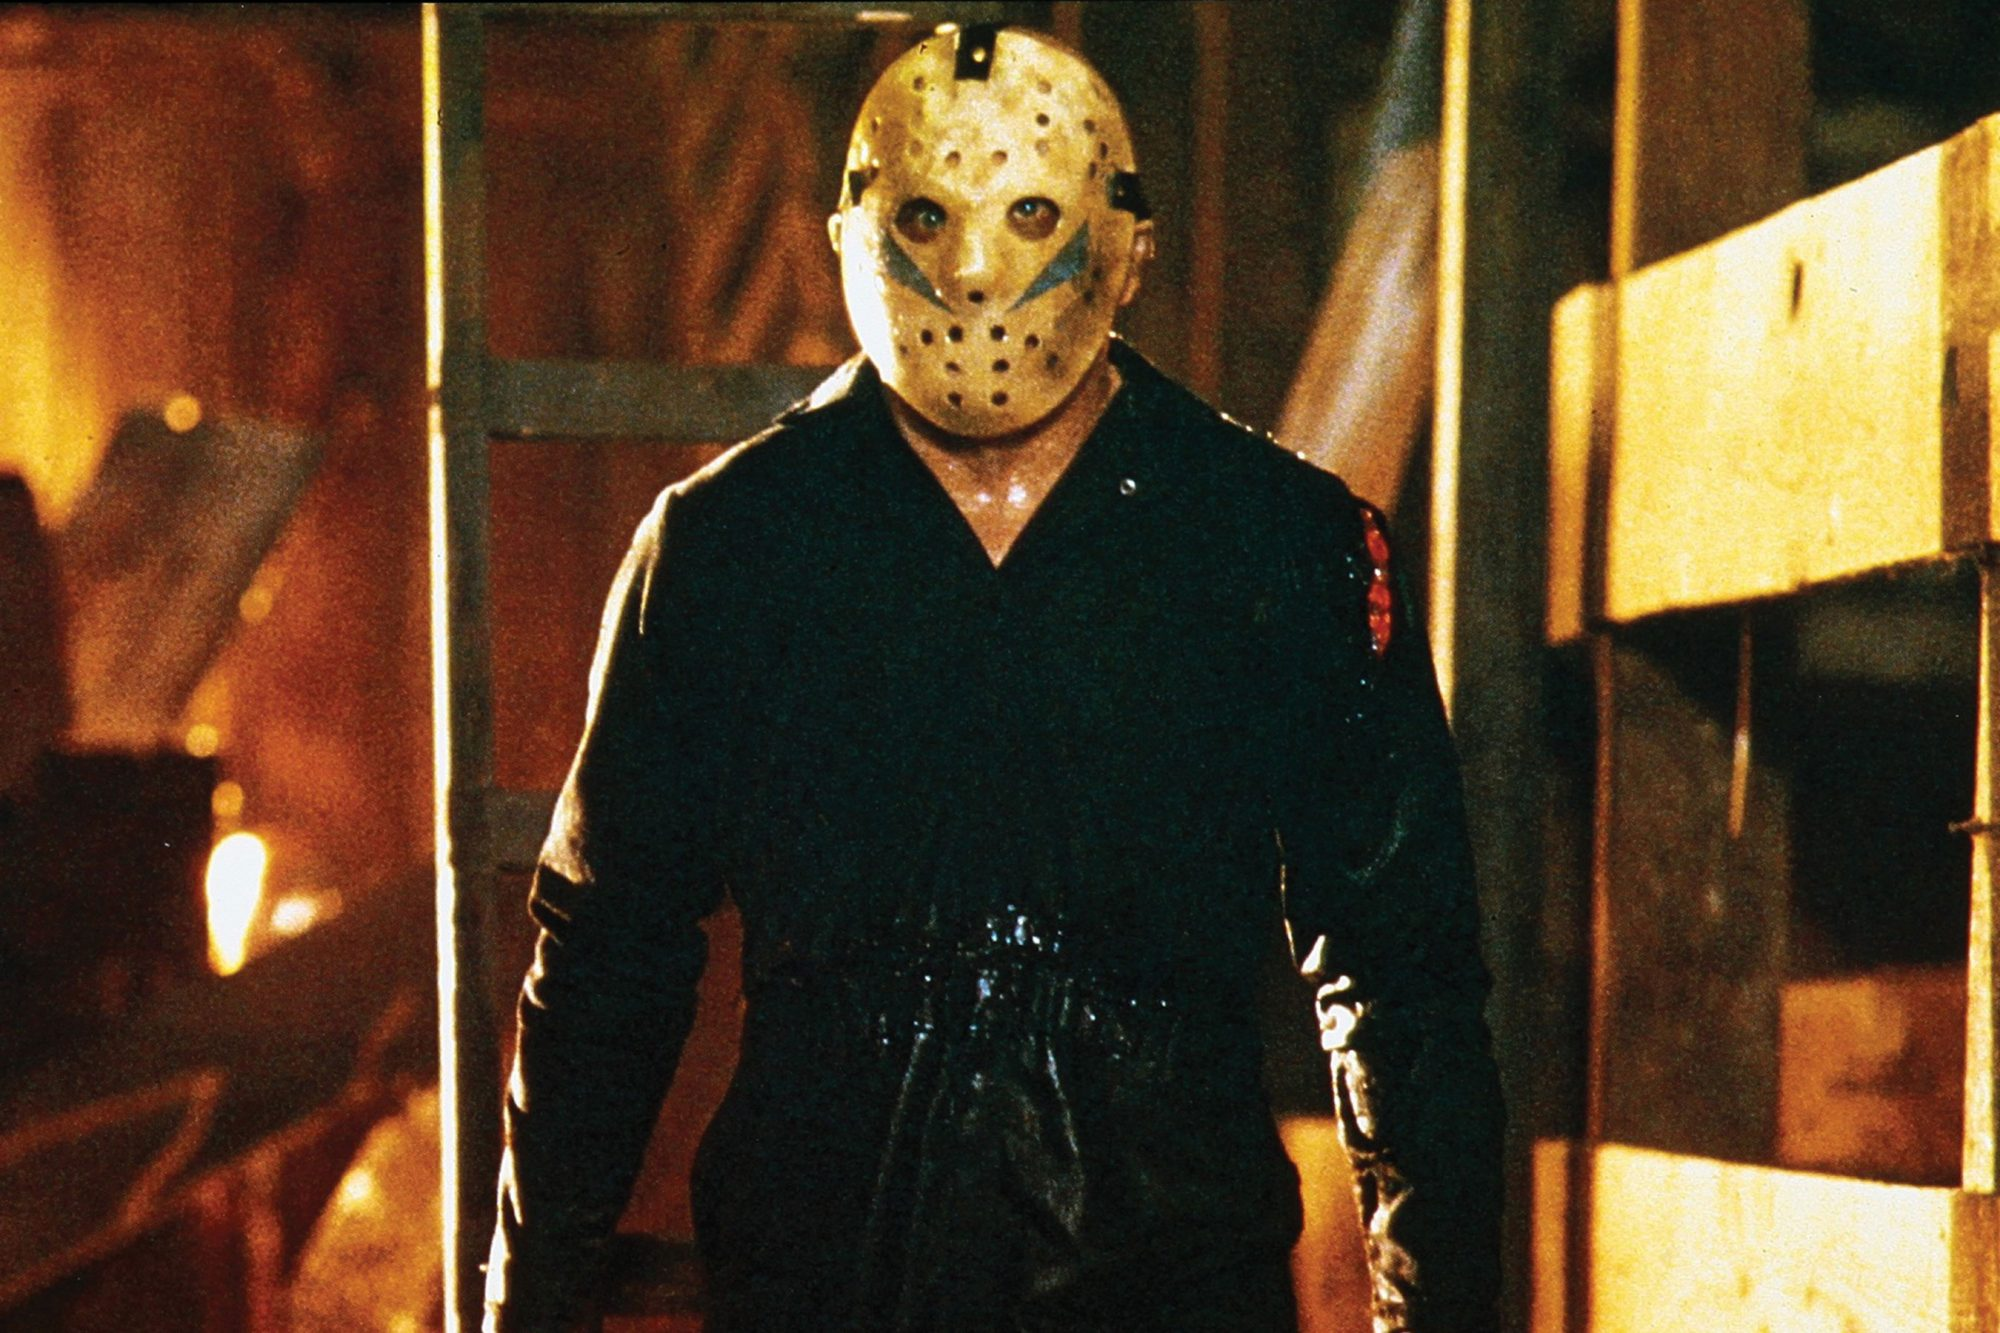 FRIDAY THE 13TH: A NEW BEGINNING, (aka FRIDAY THE 13TH PART V), Dick Wieand,  1985, ©